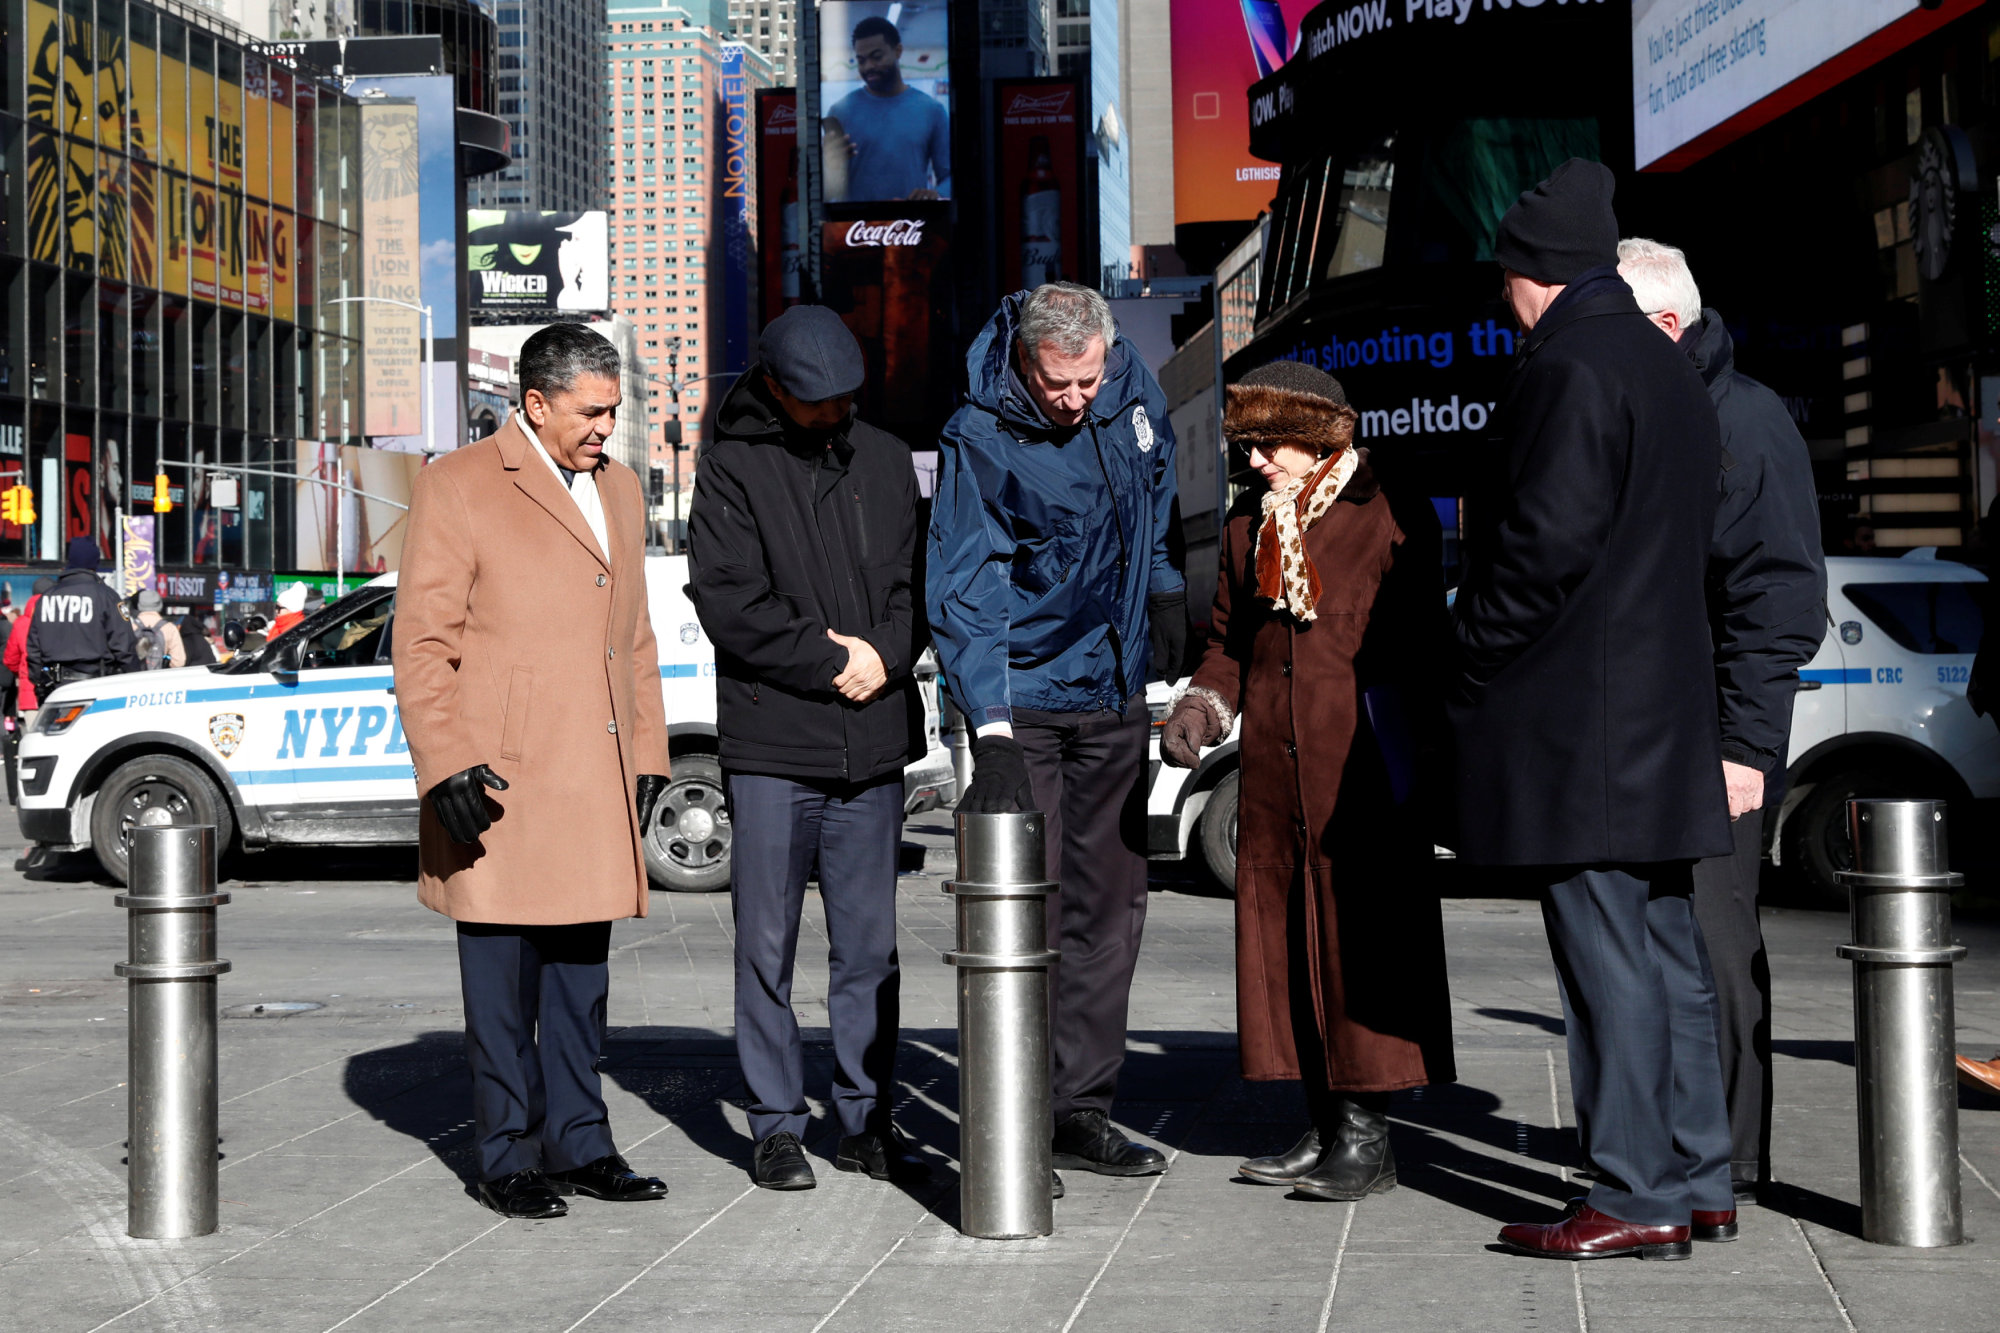 New York City mayor Bill de Blasio, New York City Department of Transportation Commissioner Polly Trottenberg, NYPD Commissioner James O'Neill and U.S. Congressman Adriano Espaillat (D-NY) stand near additional bollards in Times Square, New York City